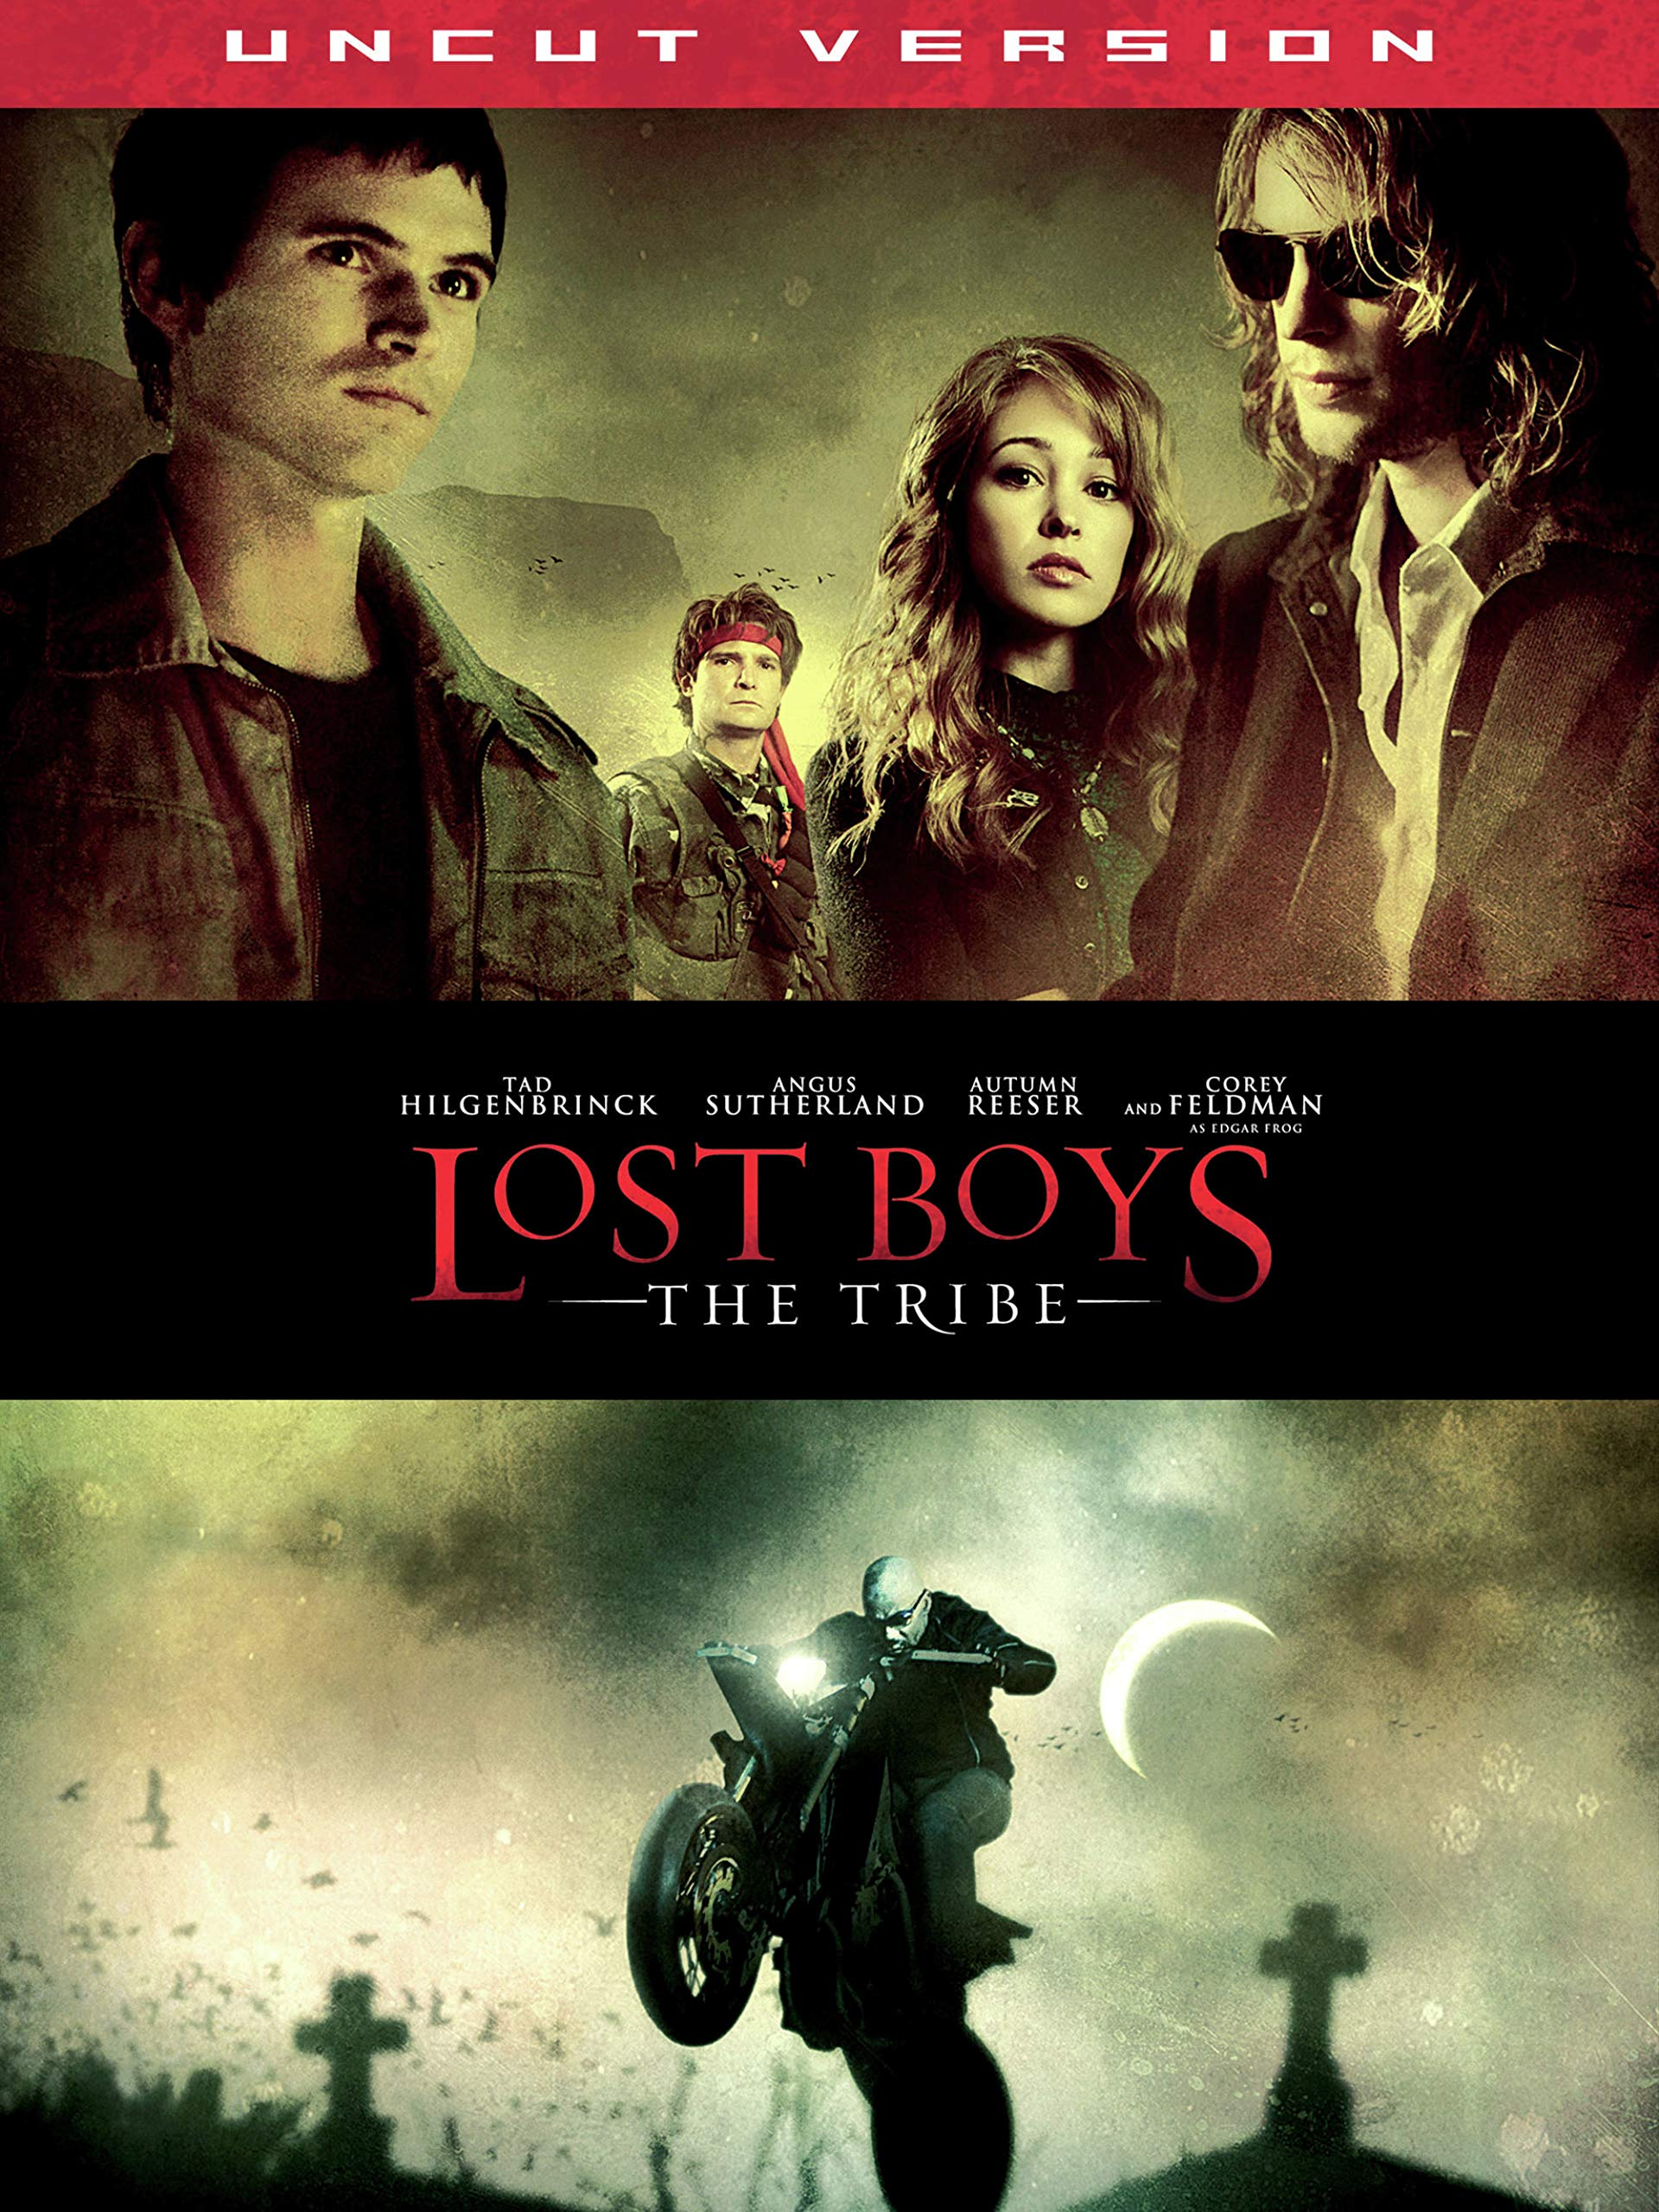 Watch Lost Boys 2 The Tribe Uncut Prime Video